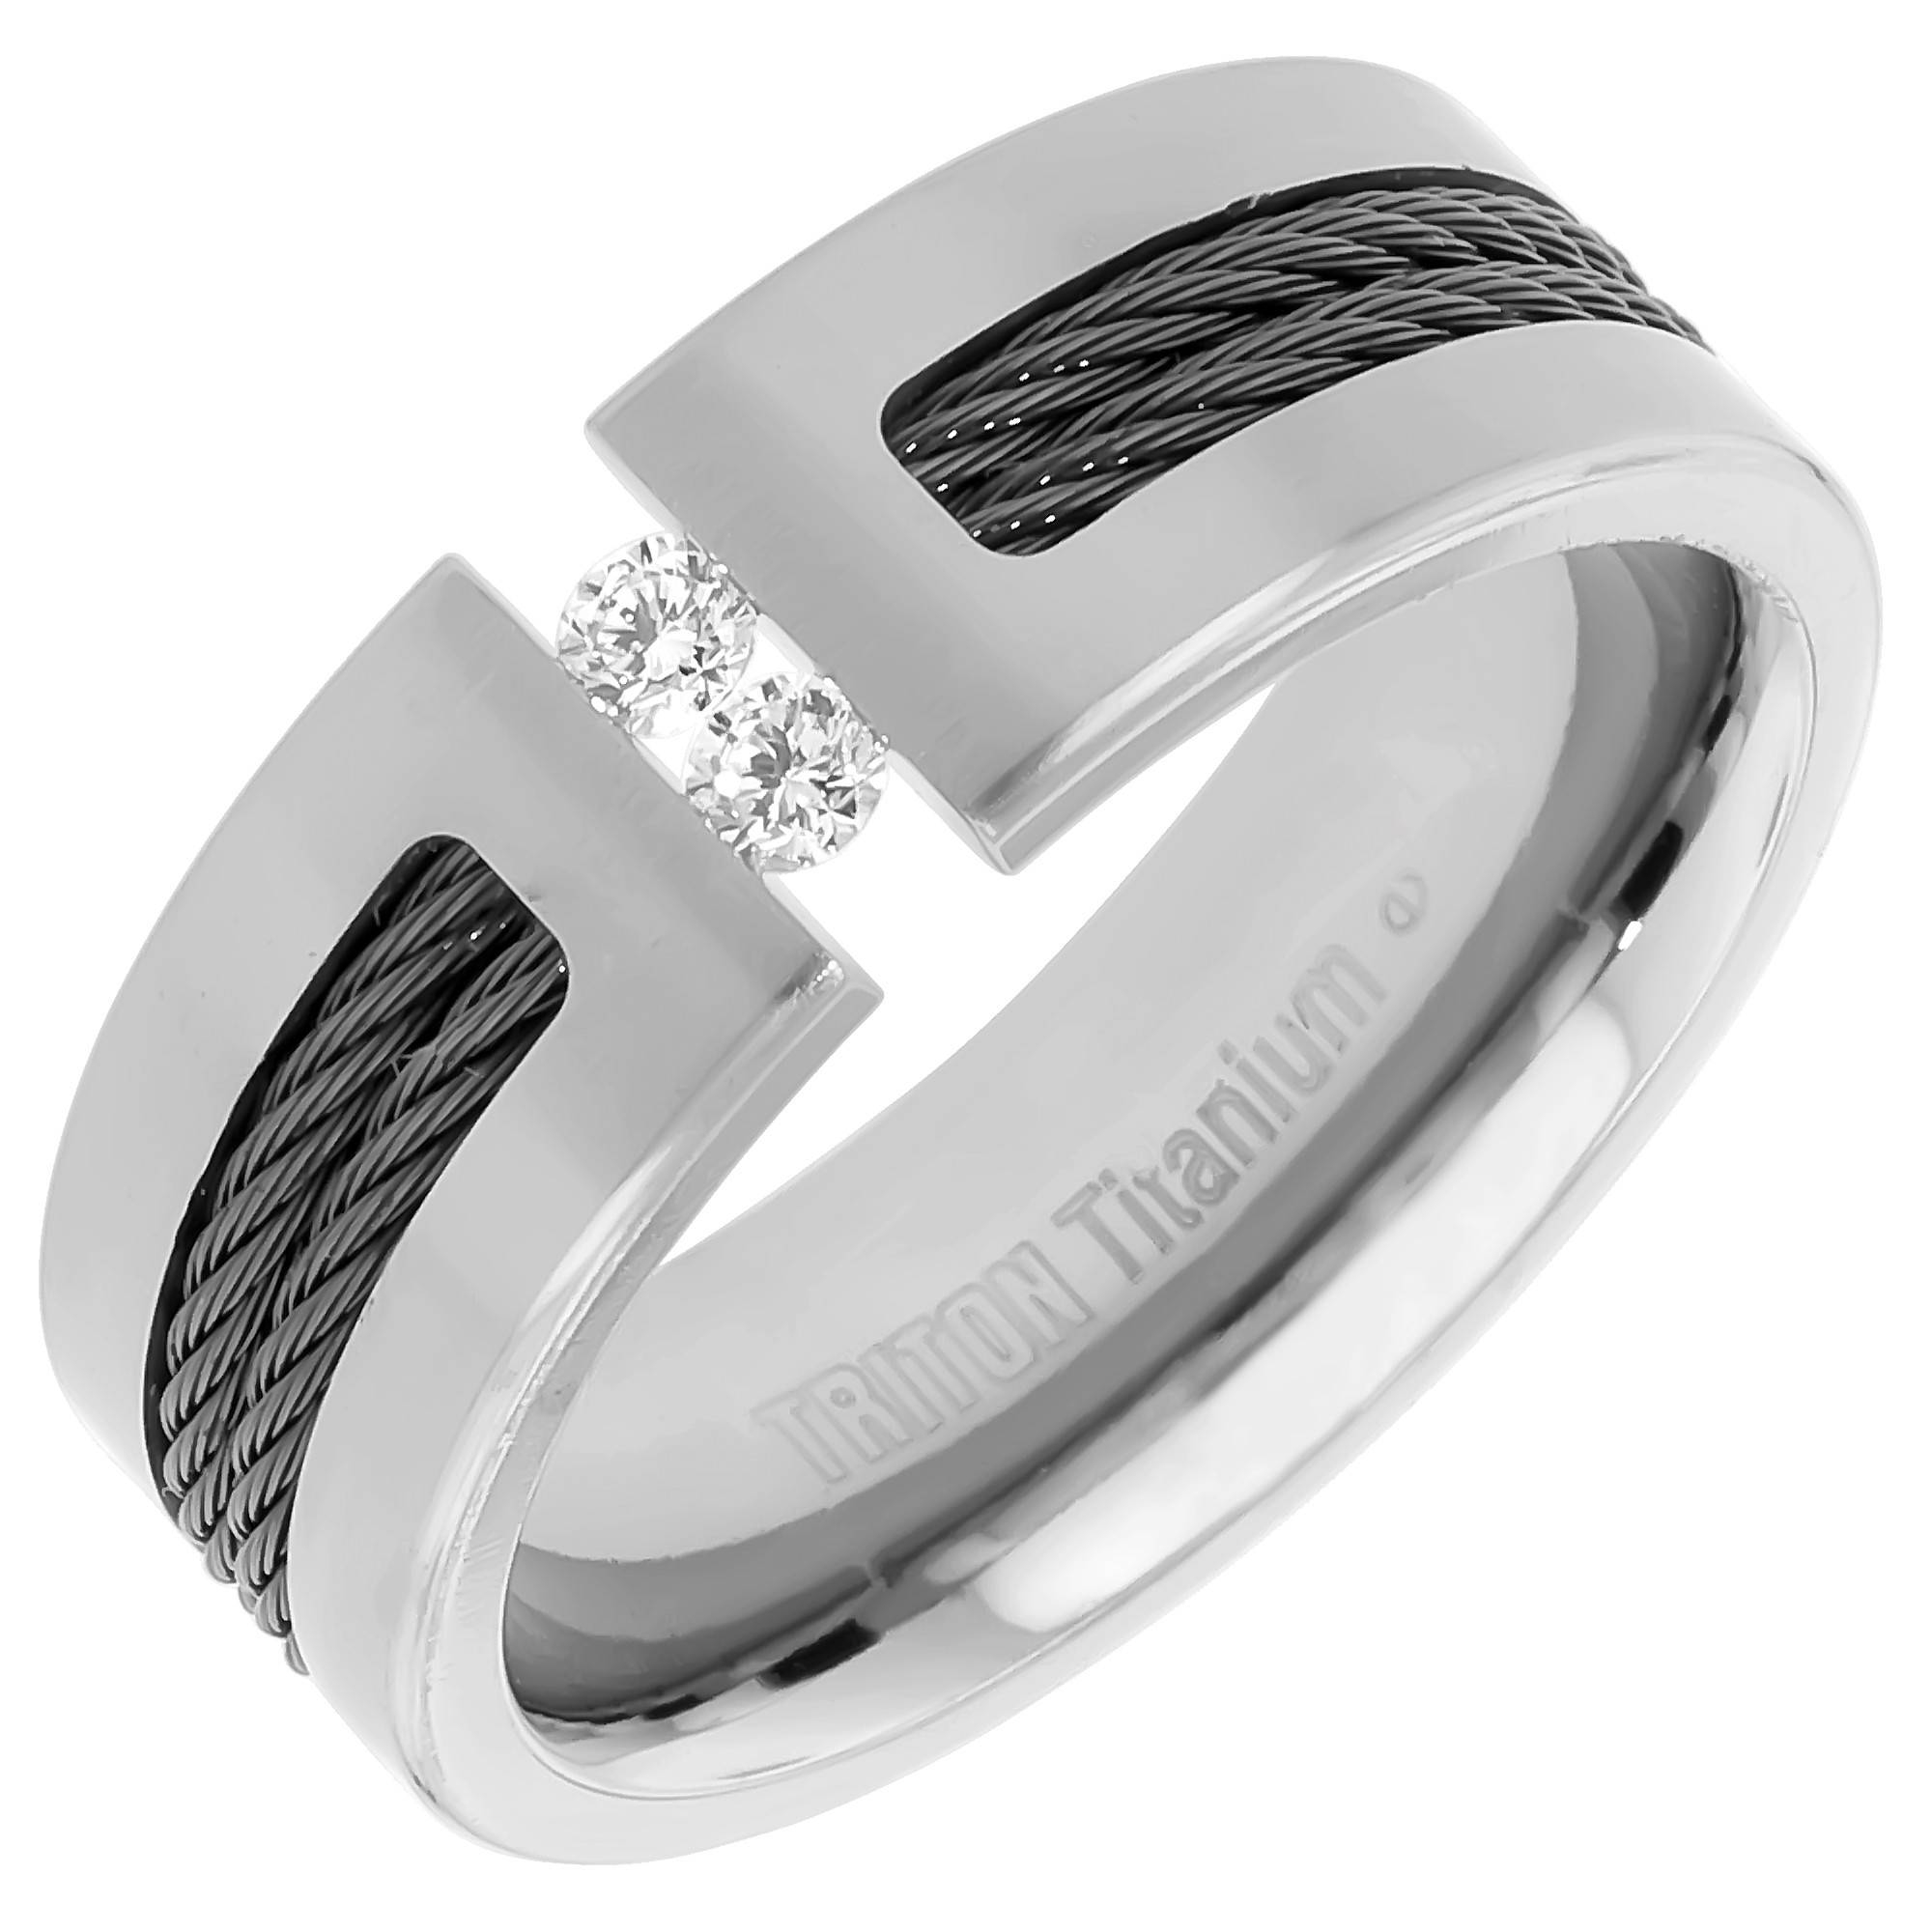 Mens Diamond Wedding Band In Titanium (8Mm) Pertaining To Black Diamond Wedding Bands For Him (View 10 of 15)